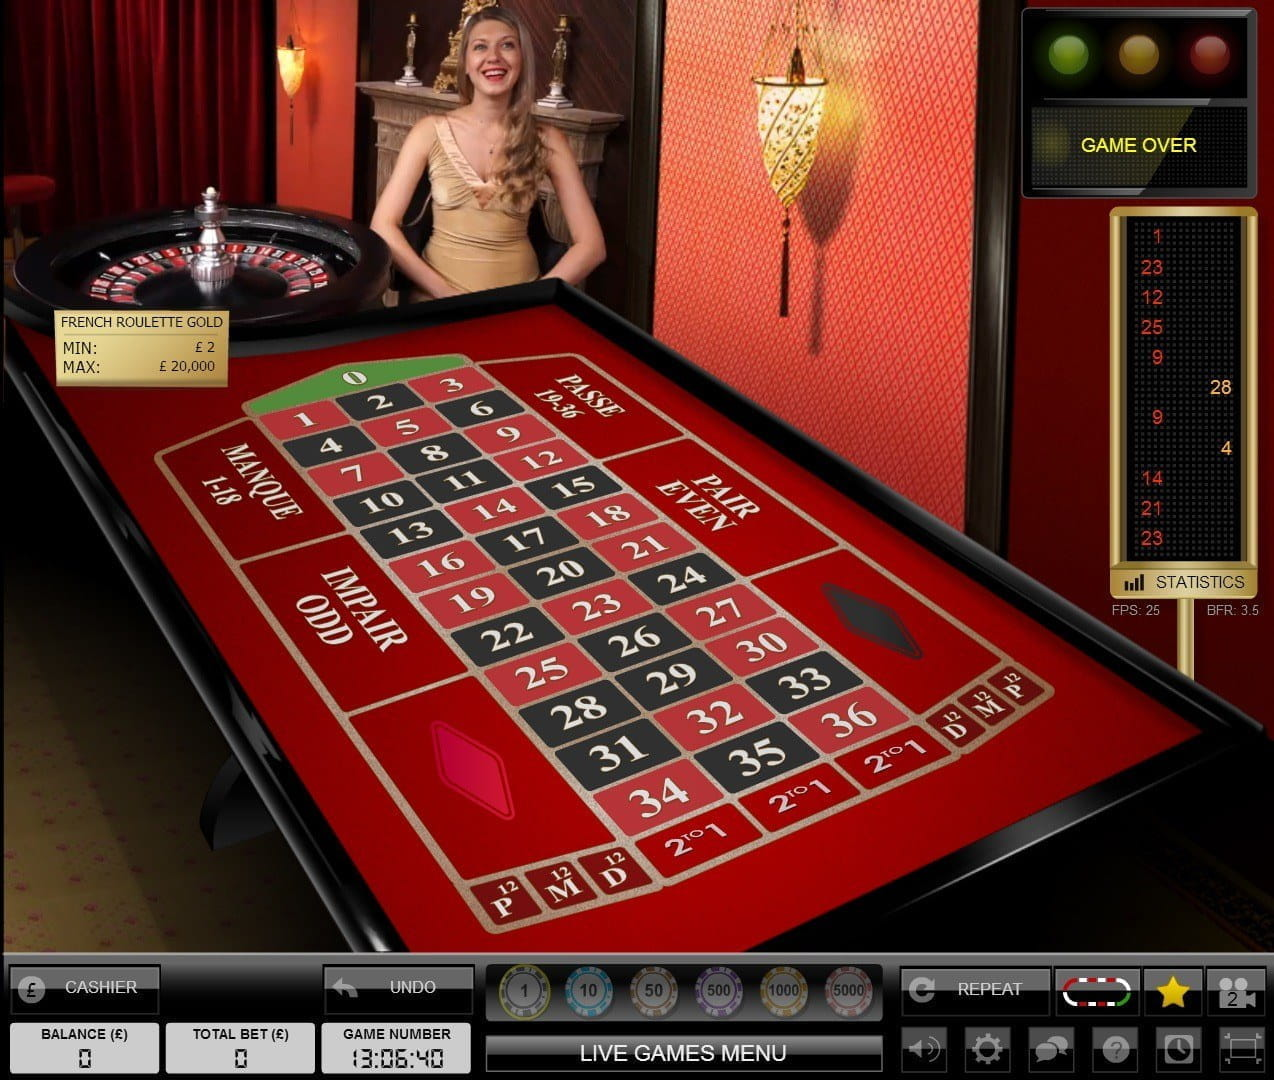 Play Live Casino at William Hill With Exclusive Live Dealer Games